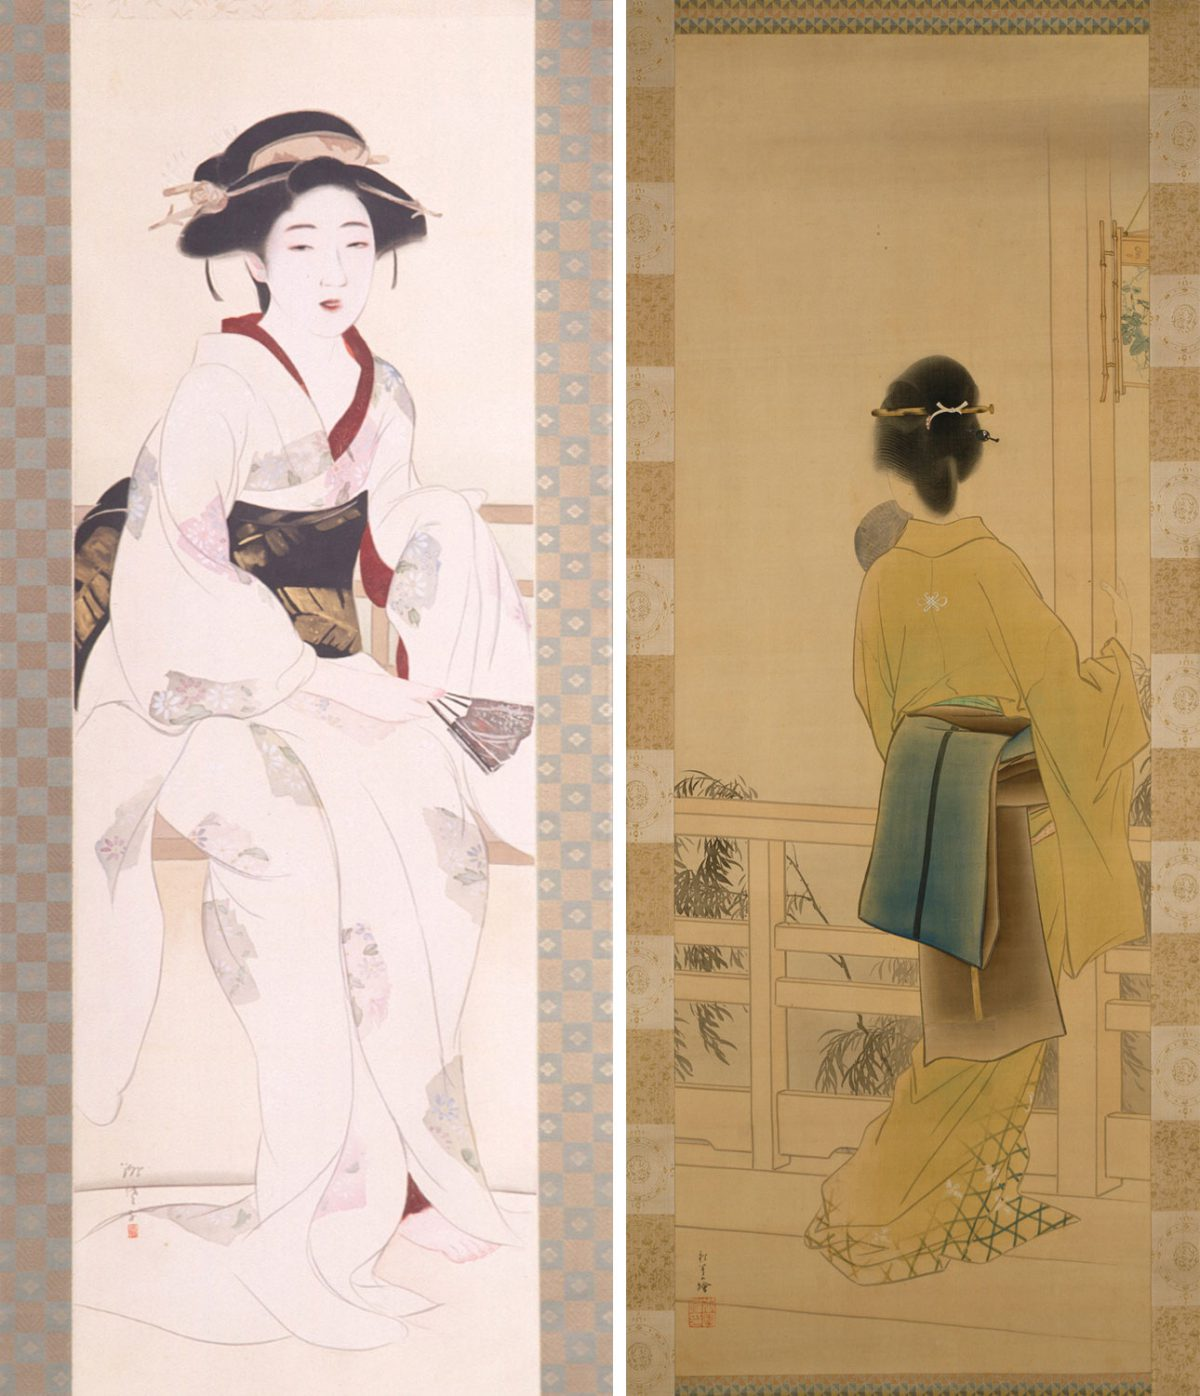 Object of the Week: Summer Evening & Woman in Summer Attire